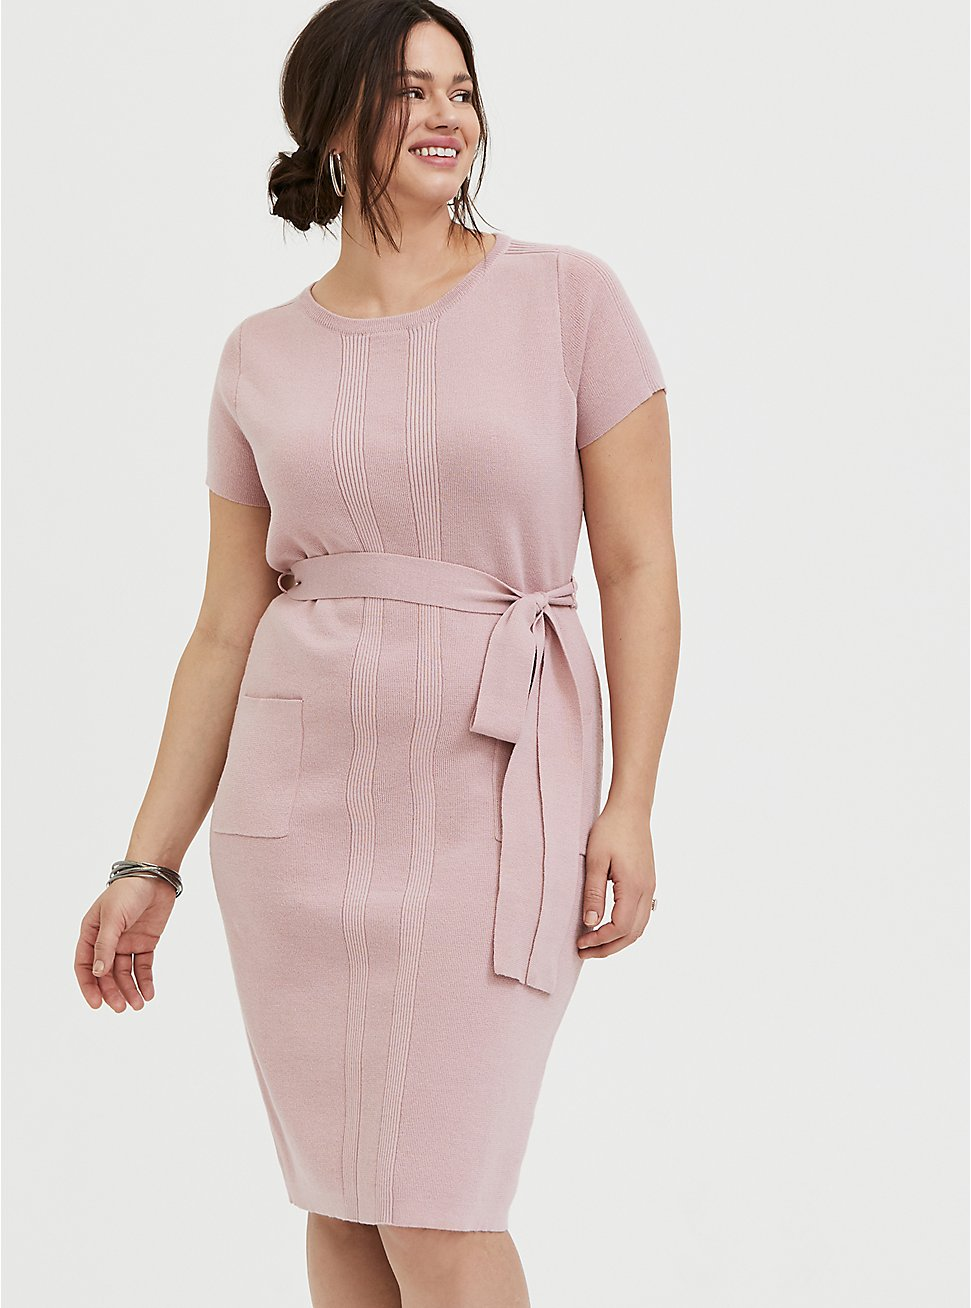 Mauve Pink Sweater Knit Self Tie Shift Dress, PALE MAUVE, hi-res